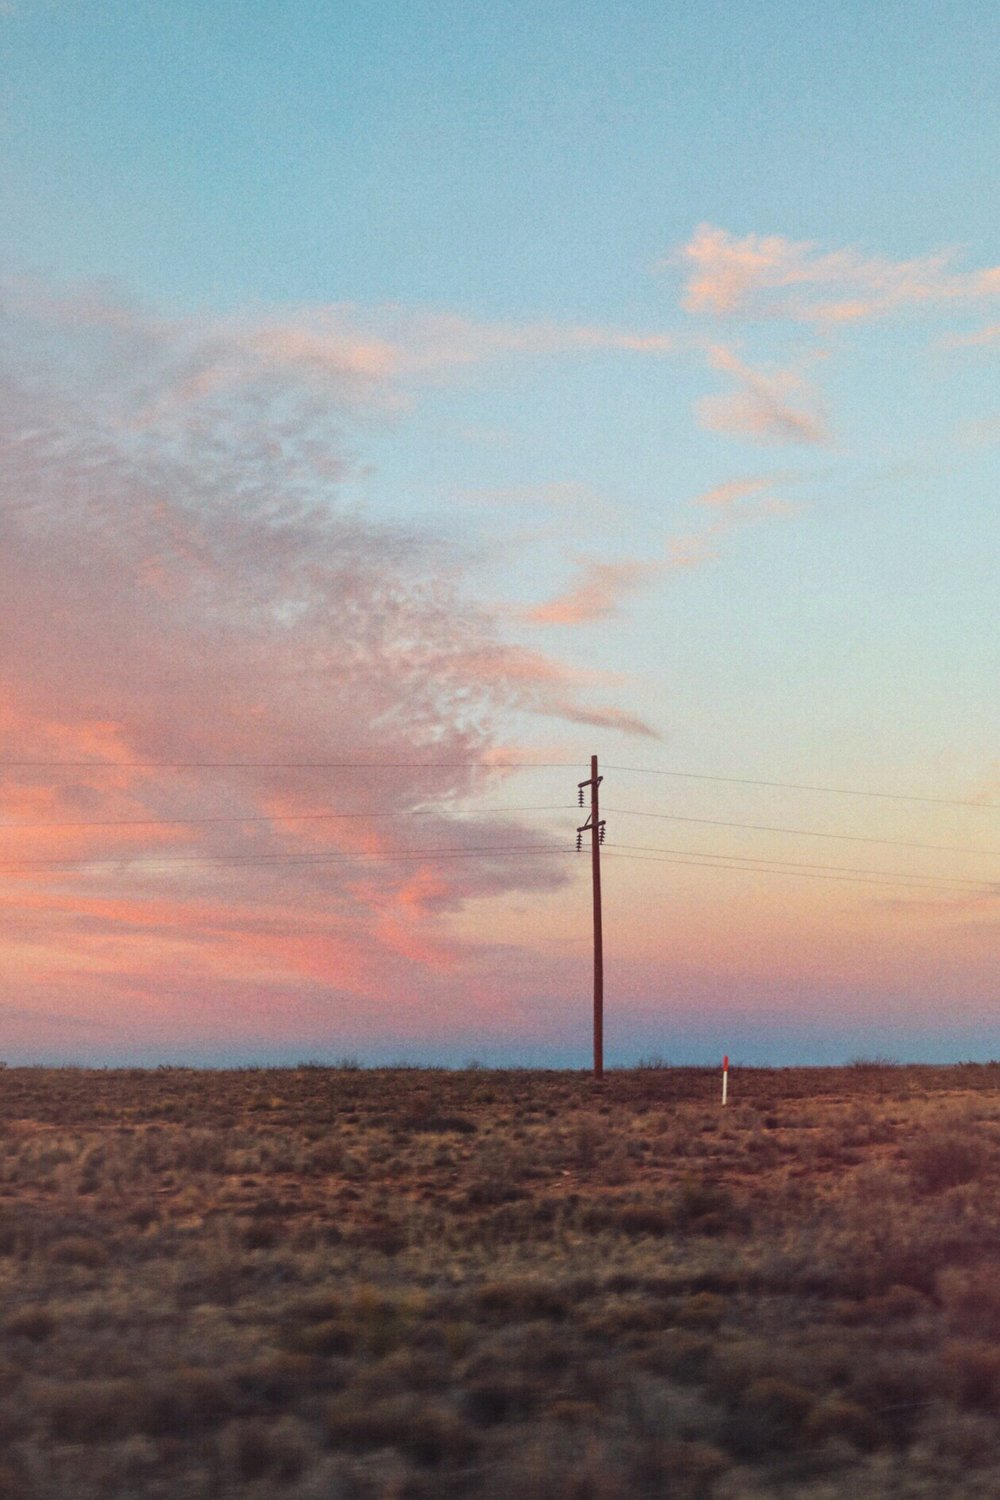 Road Trip Sunset New Mexico - Kelly Wirht Photographer